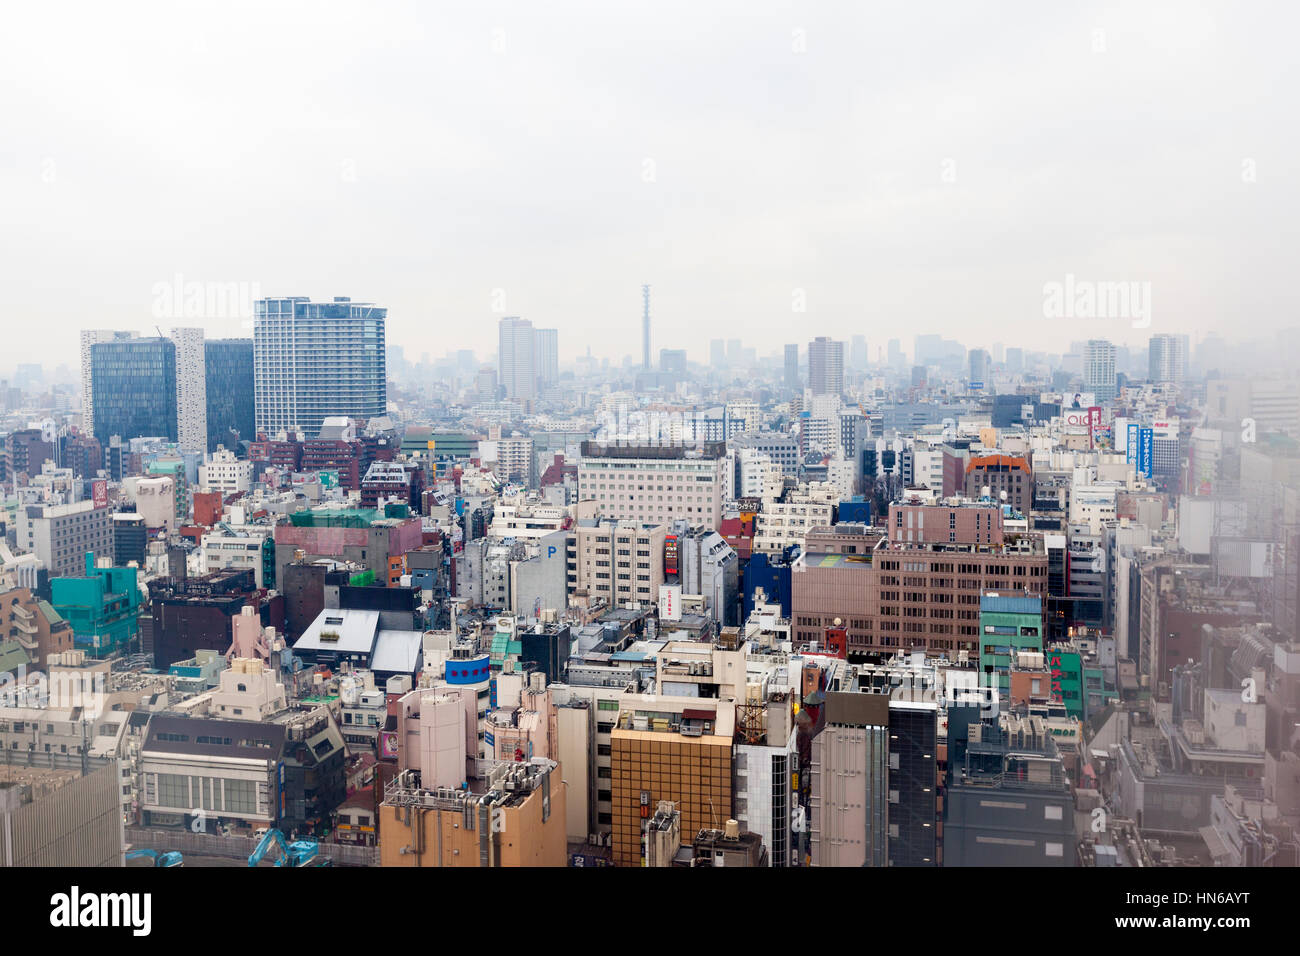 Tokyo, Japan - March 2, 2012: Elevated view of the Tokyo skyline taken through the window of a Shinjuku hotel room - Stock Image